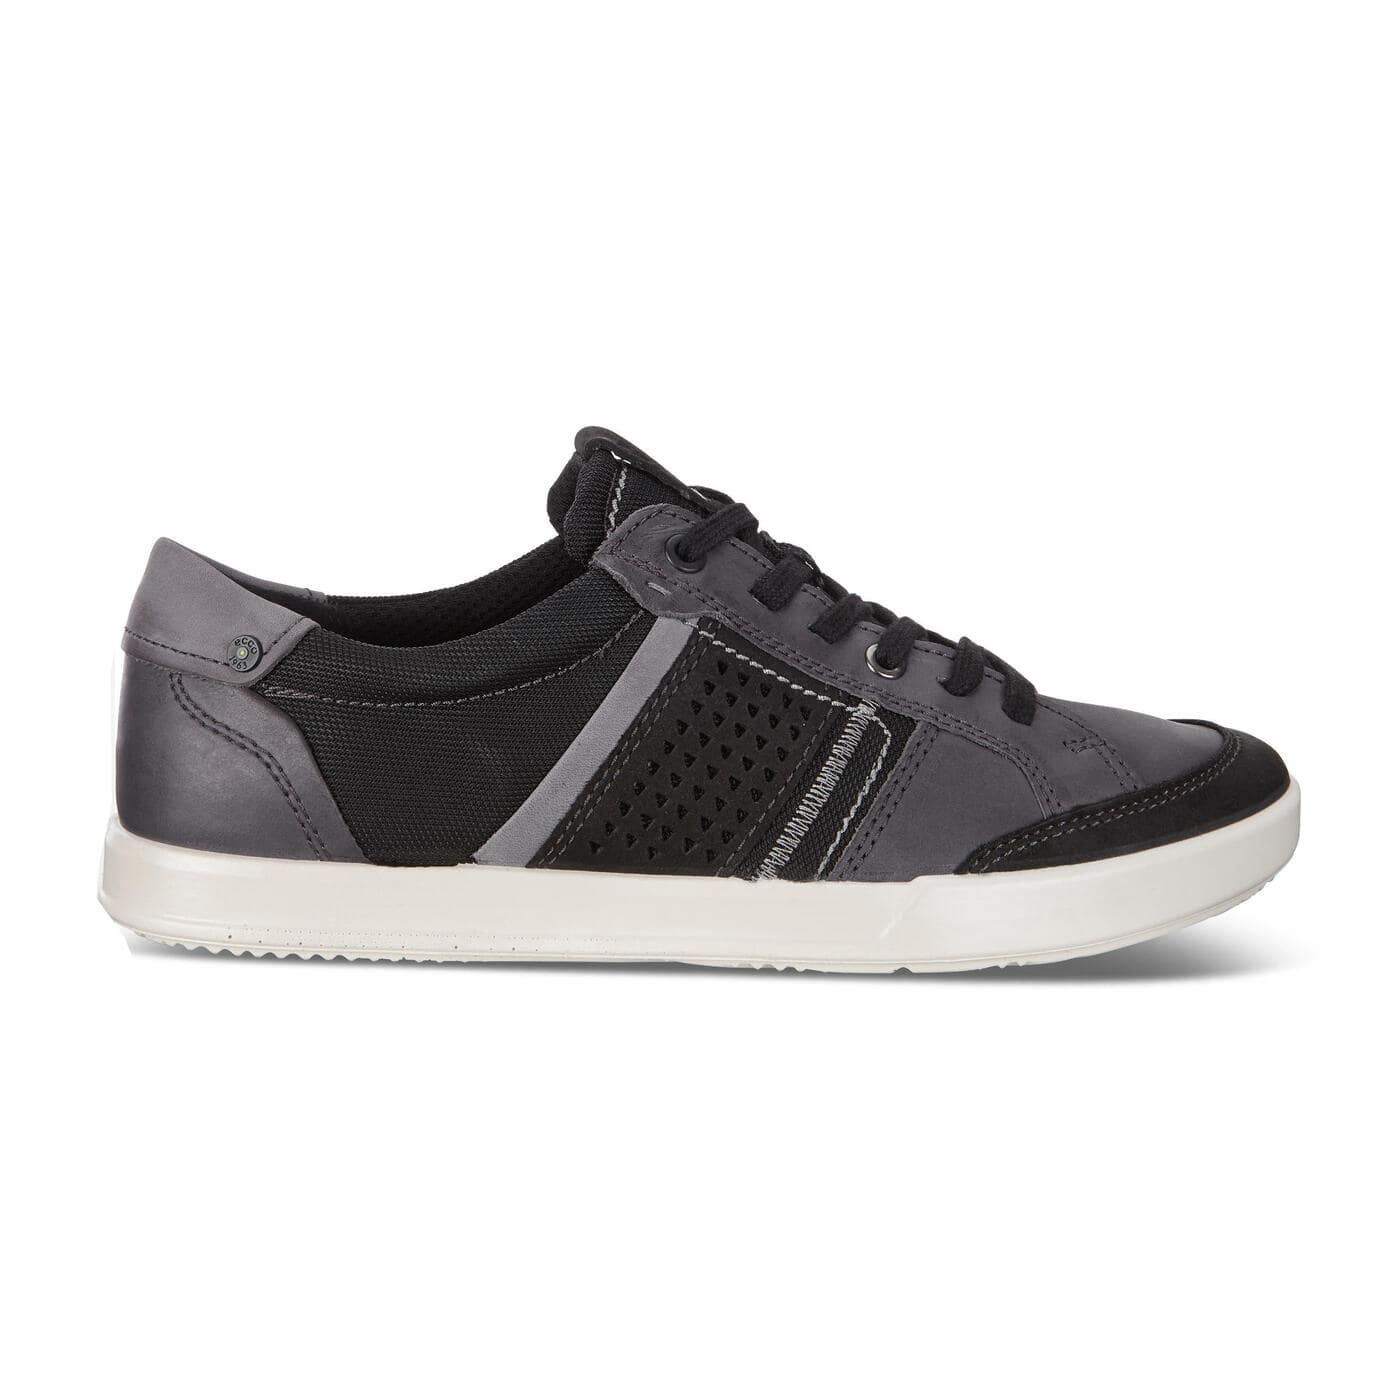 Ecco Coupon: 40% Off Sale Styles: Men's Collin 2.0 Sneaker $60, Men's Melbourne Loafer $84 & More + Free Shipping